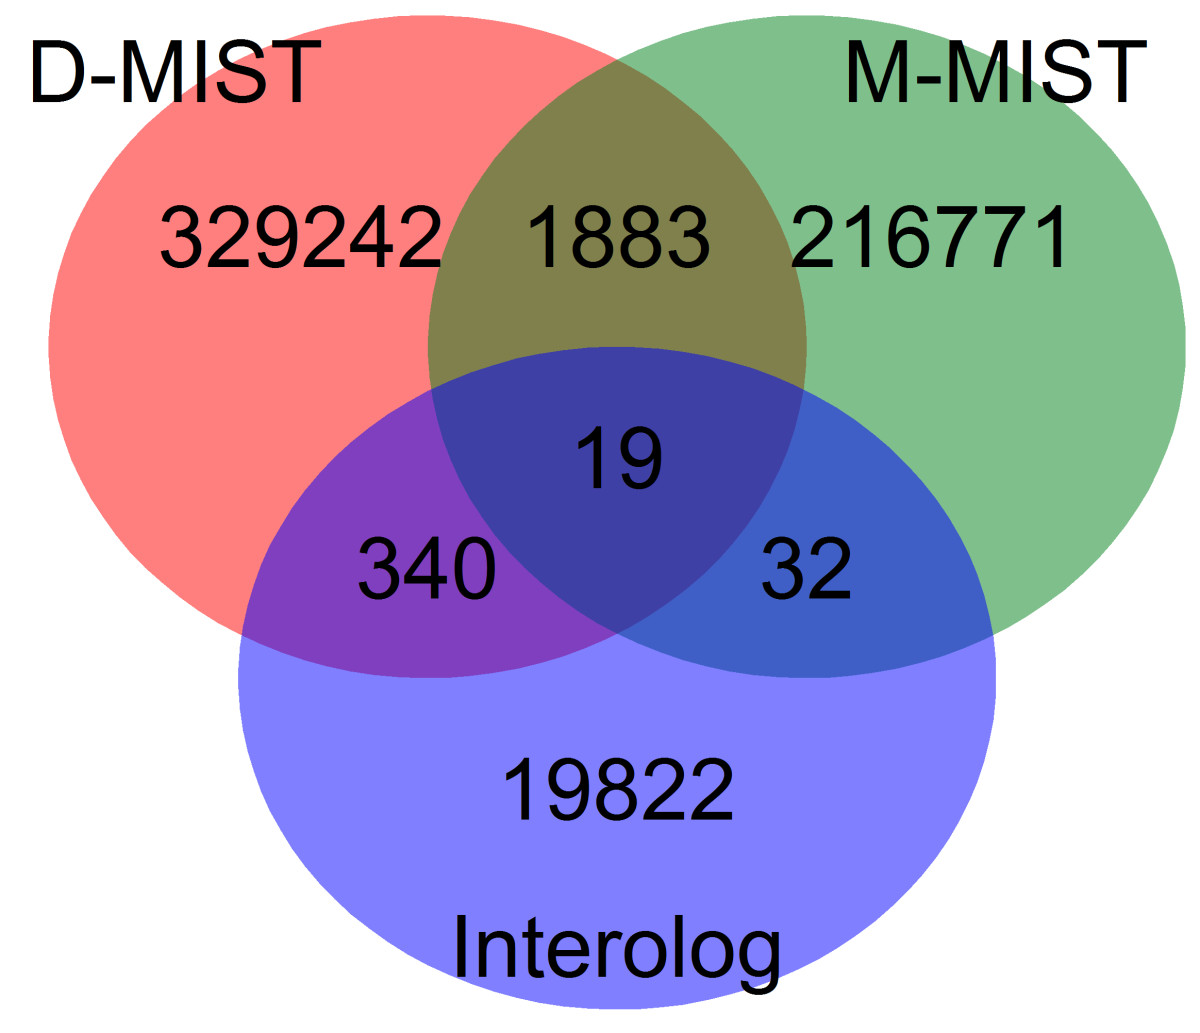 https://static-content.springer.com/image/art%3A10.1186%2F1477-5956-10-2/MediaObjects/12953_2011_Article_324_Fig1_HTML.jpg